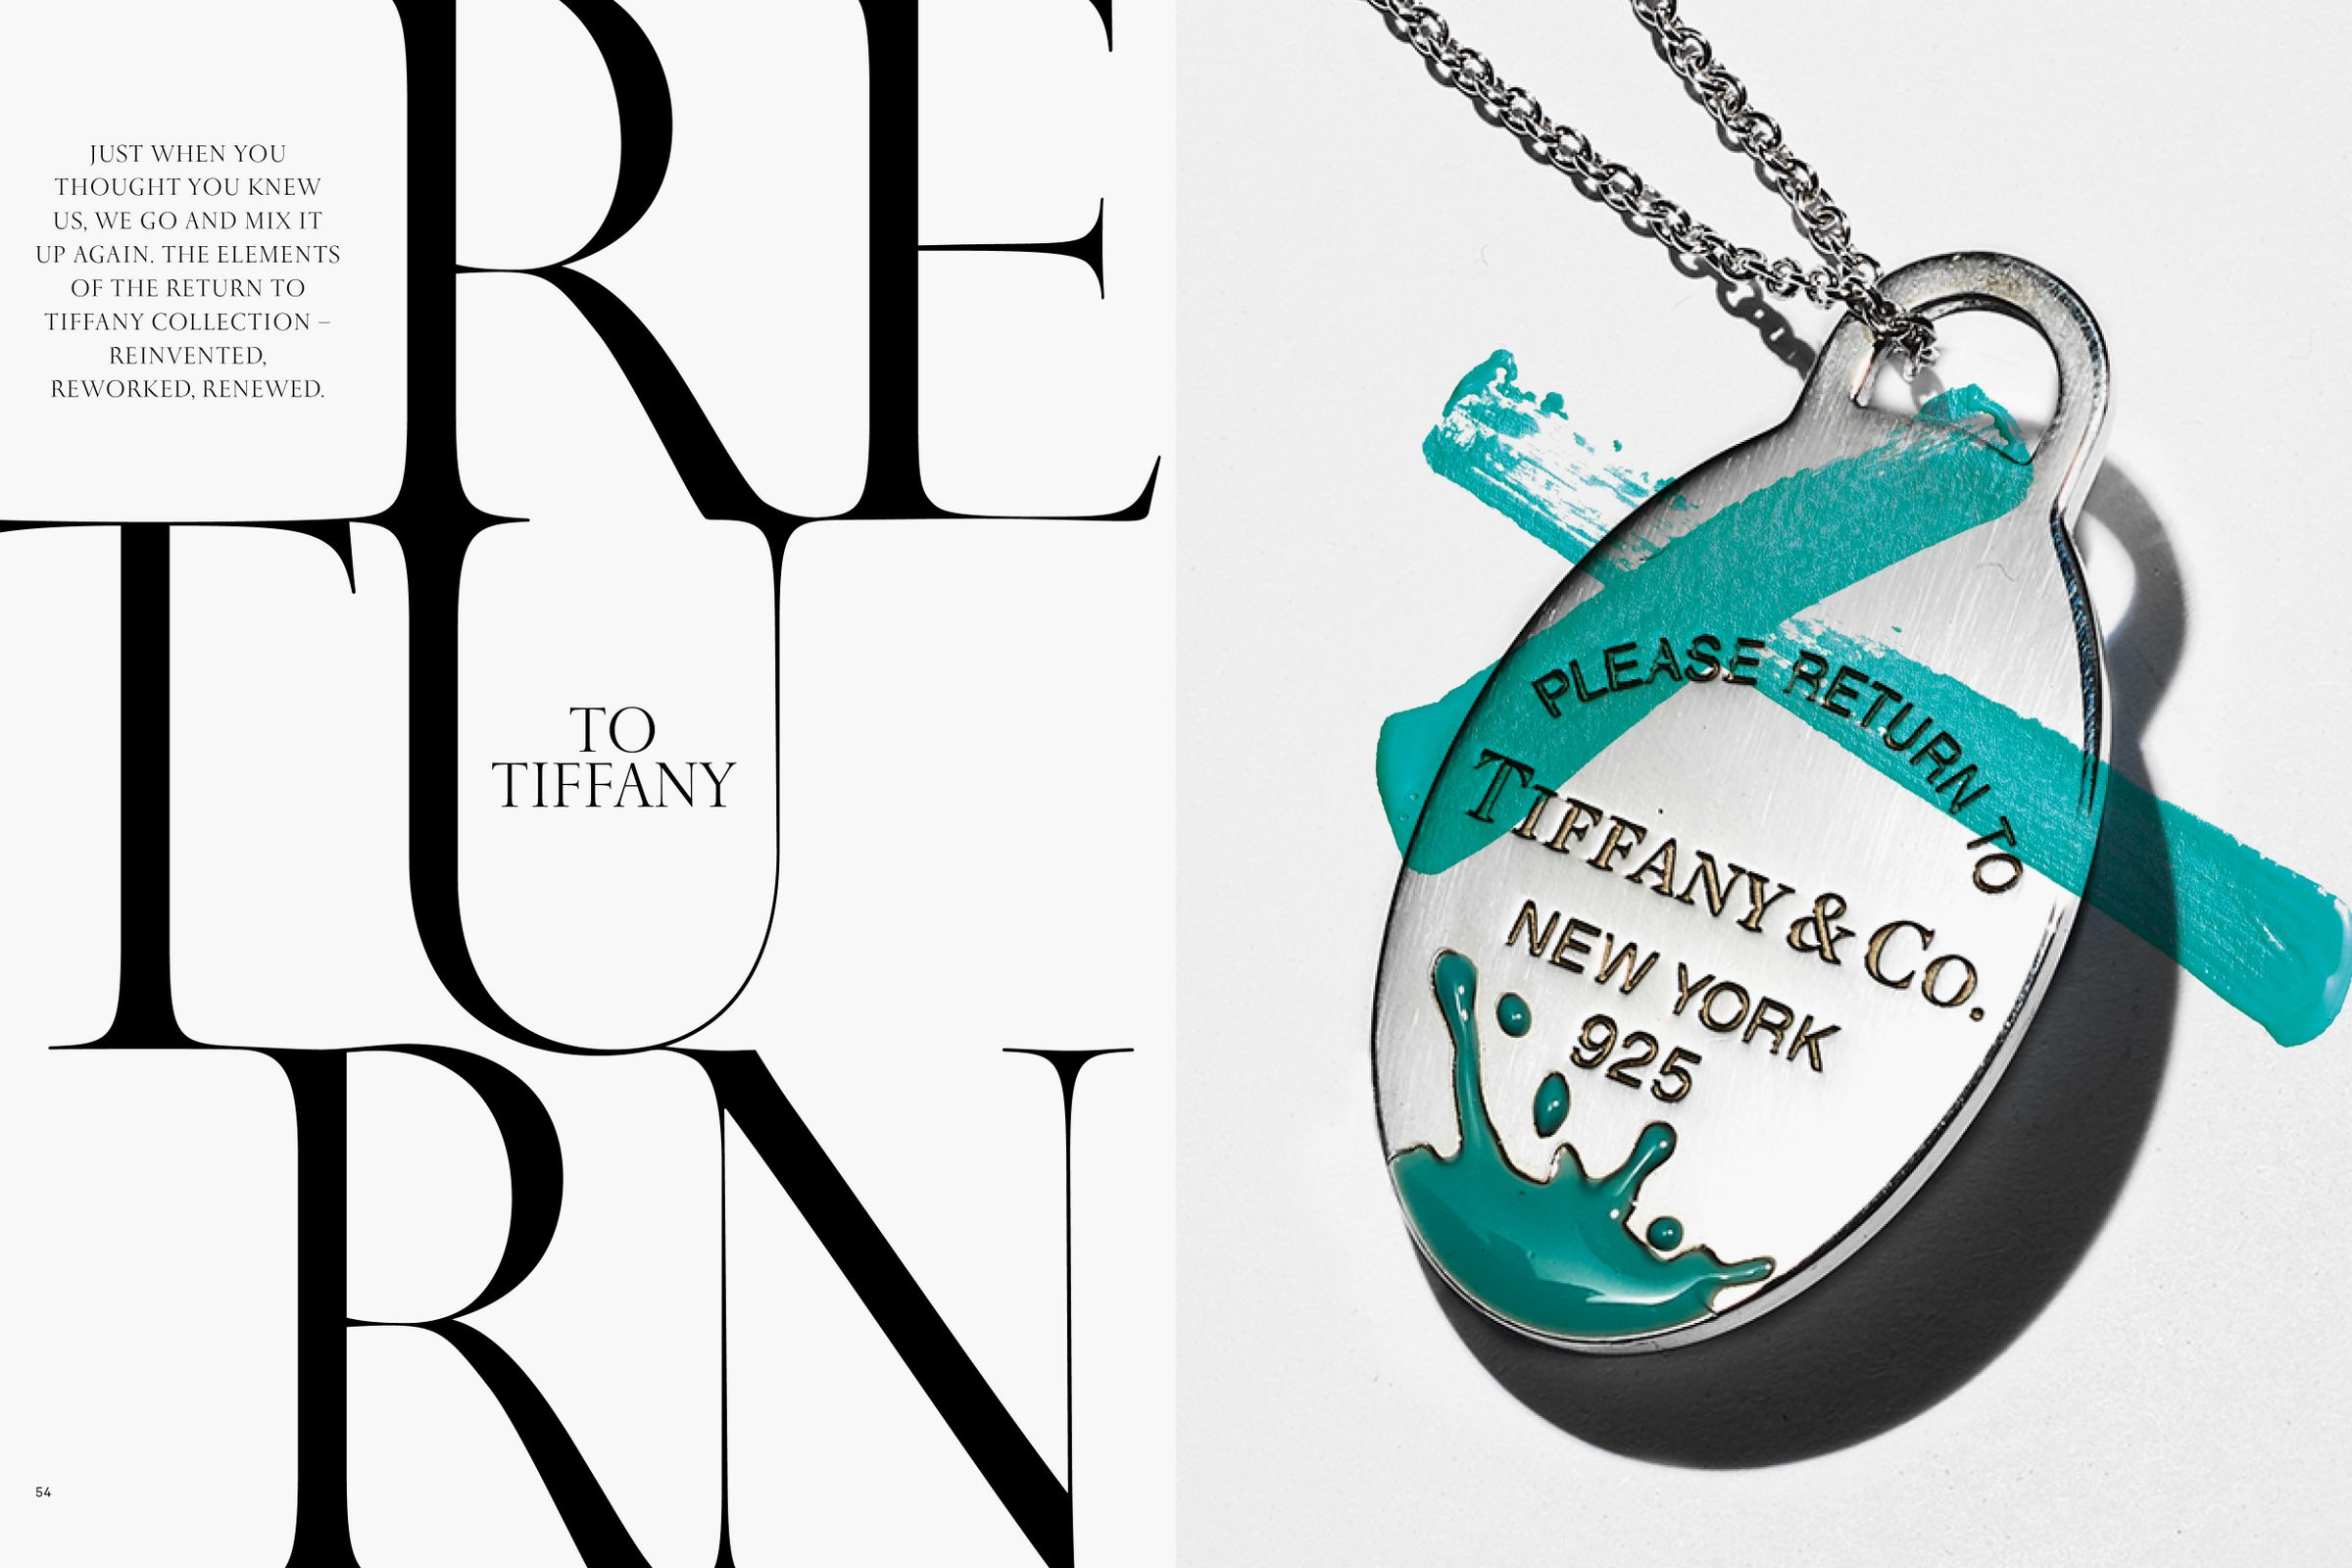 This is Tiffany magazine Issue 6 Return to Tiffany opening spread title layout